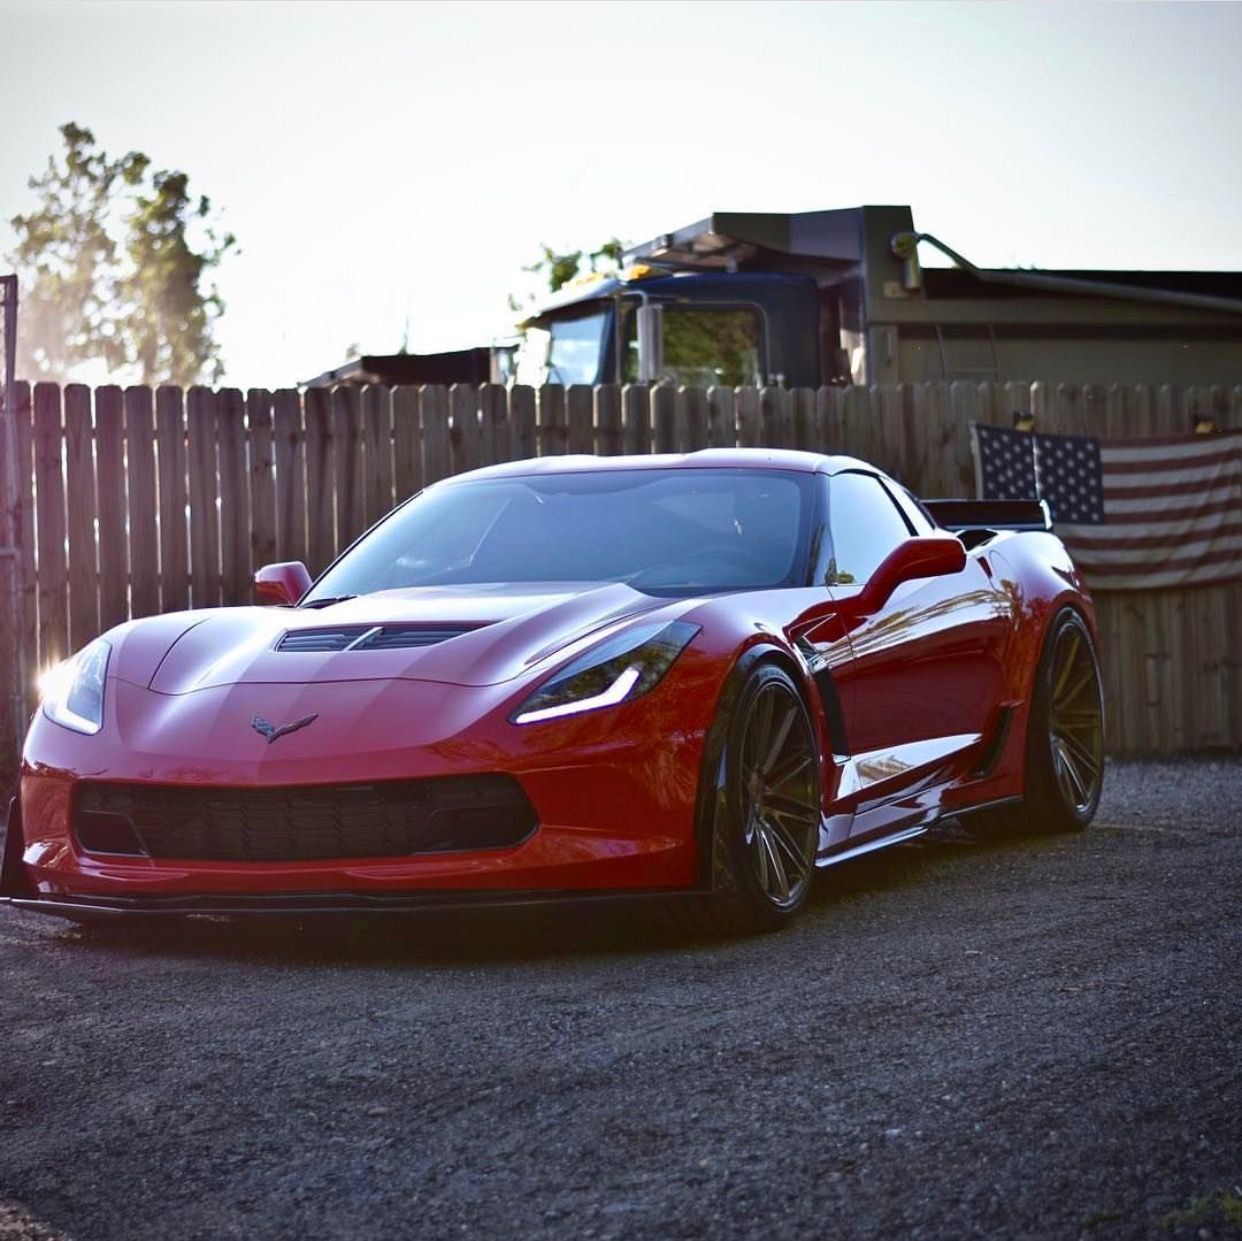 Chevrolet Corvette C7 Z06 Coupe Painted In Torch Red W Vossen Vps